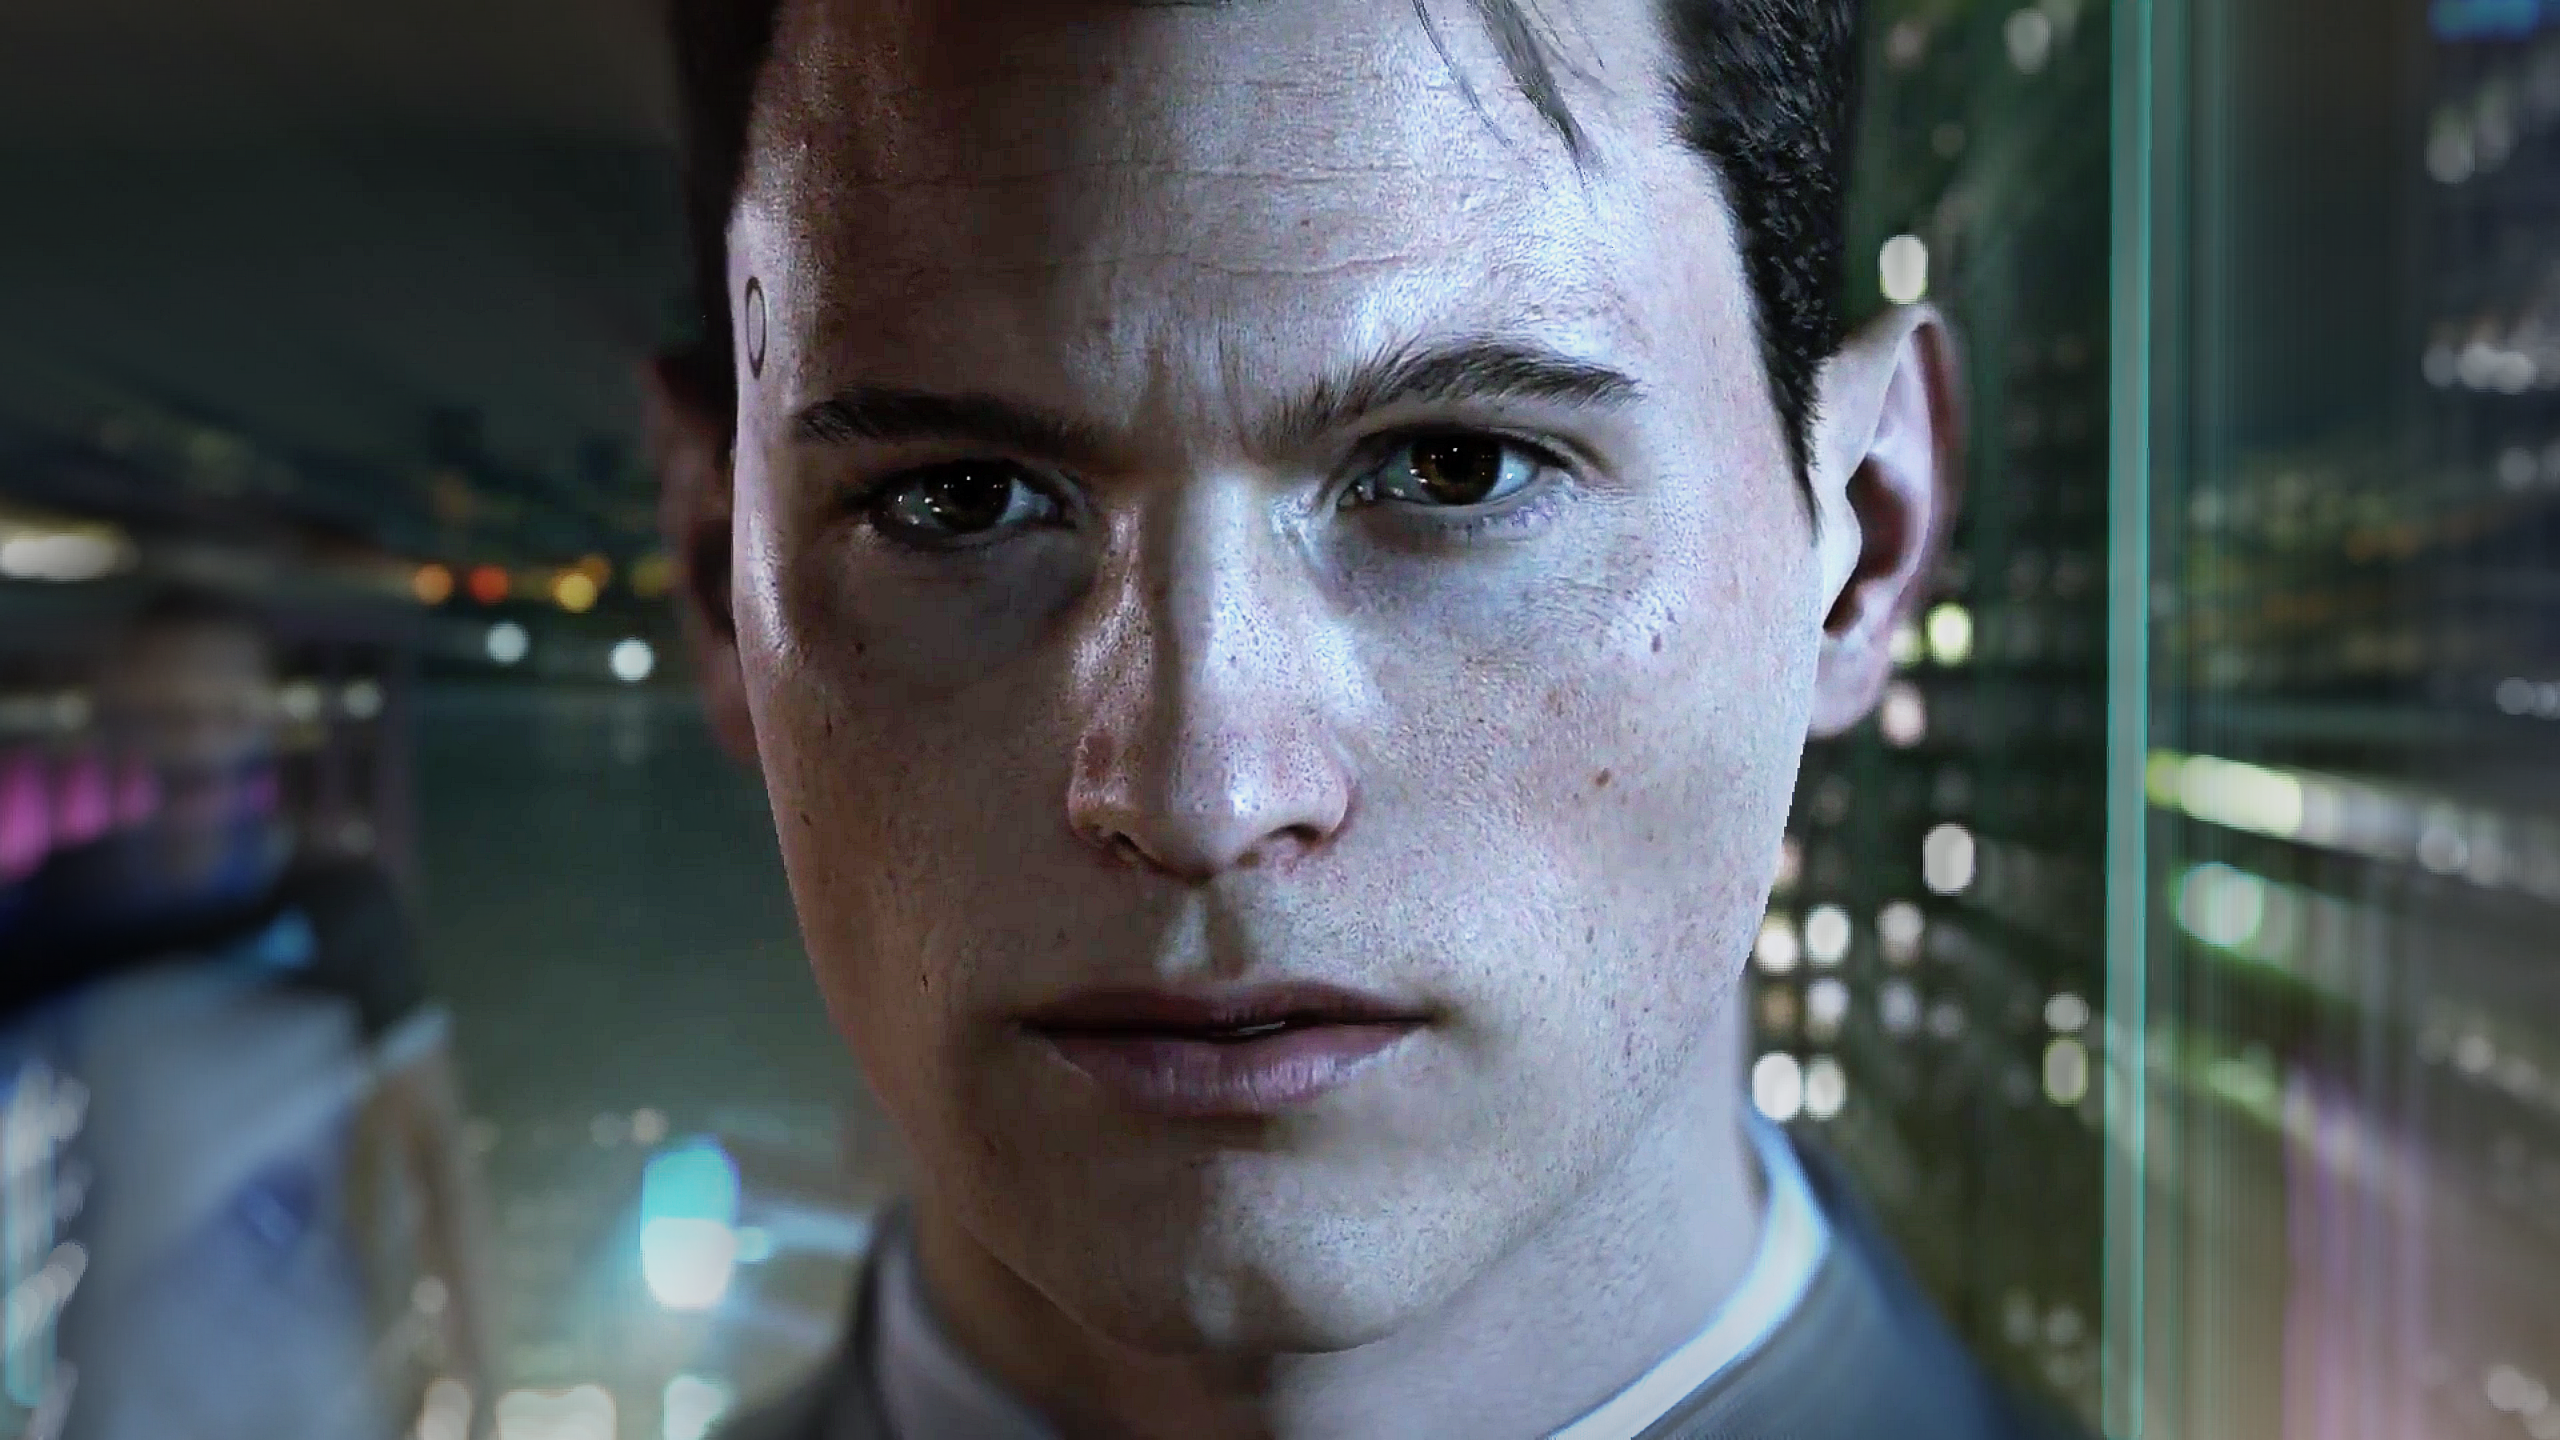 Detroit Become Human Connor Wallpaper: Connor Wallpaper By Drive637 On